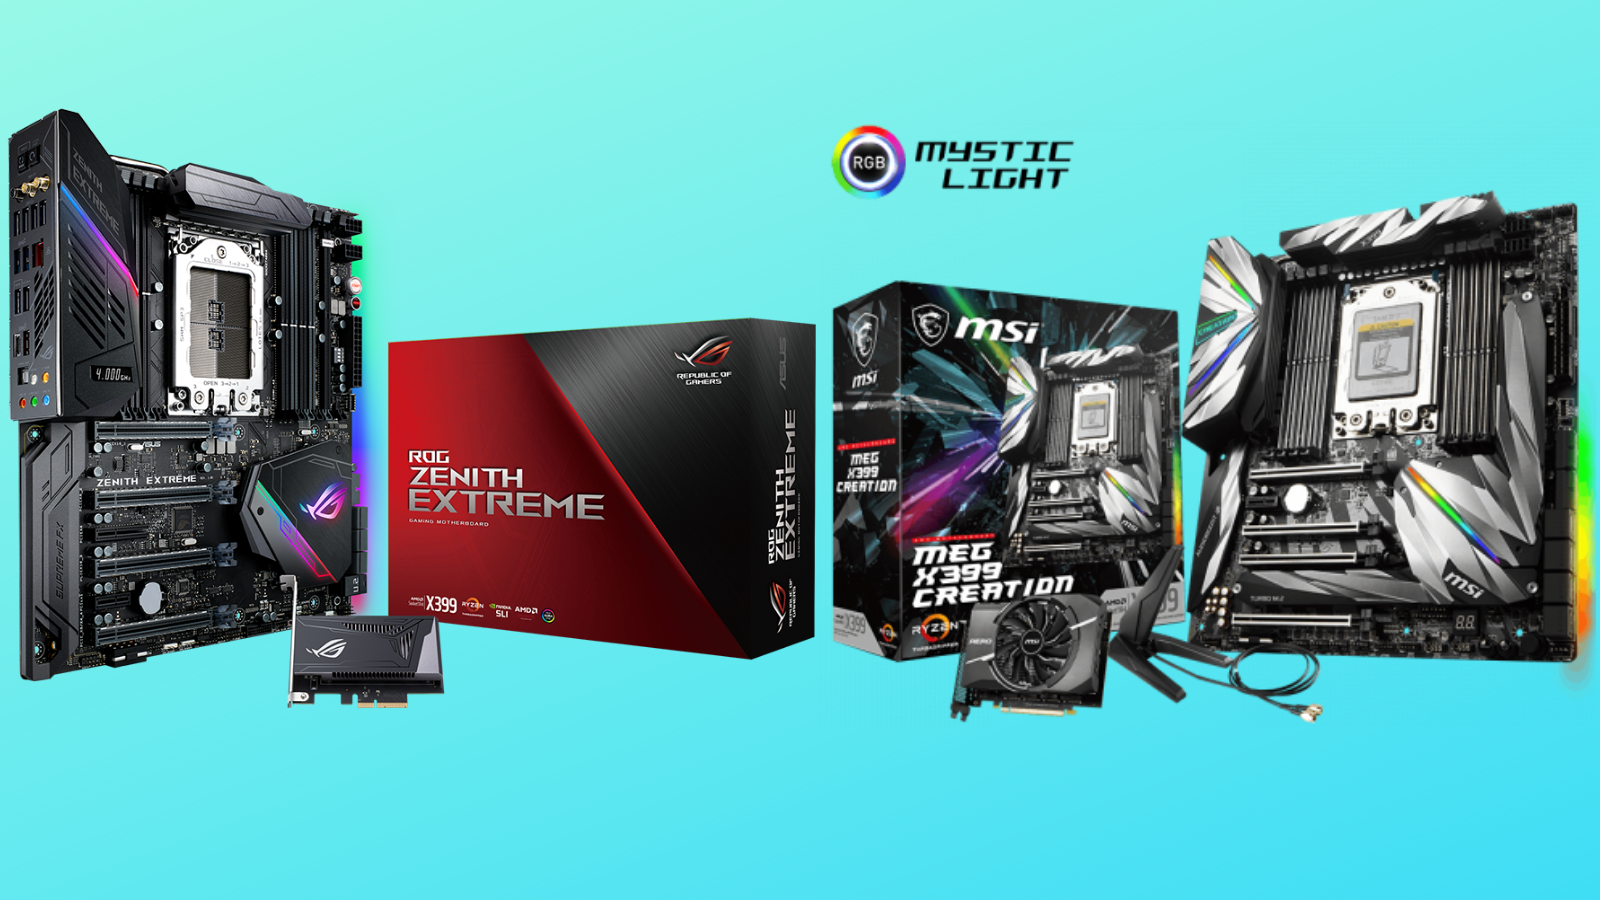 The Best X399 Motherboards To Buy In 2020 For Amd Threadripper Cpus